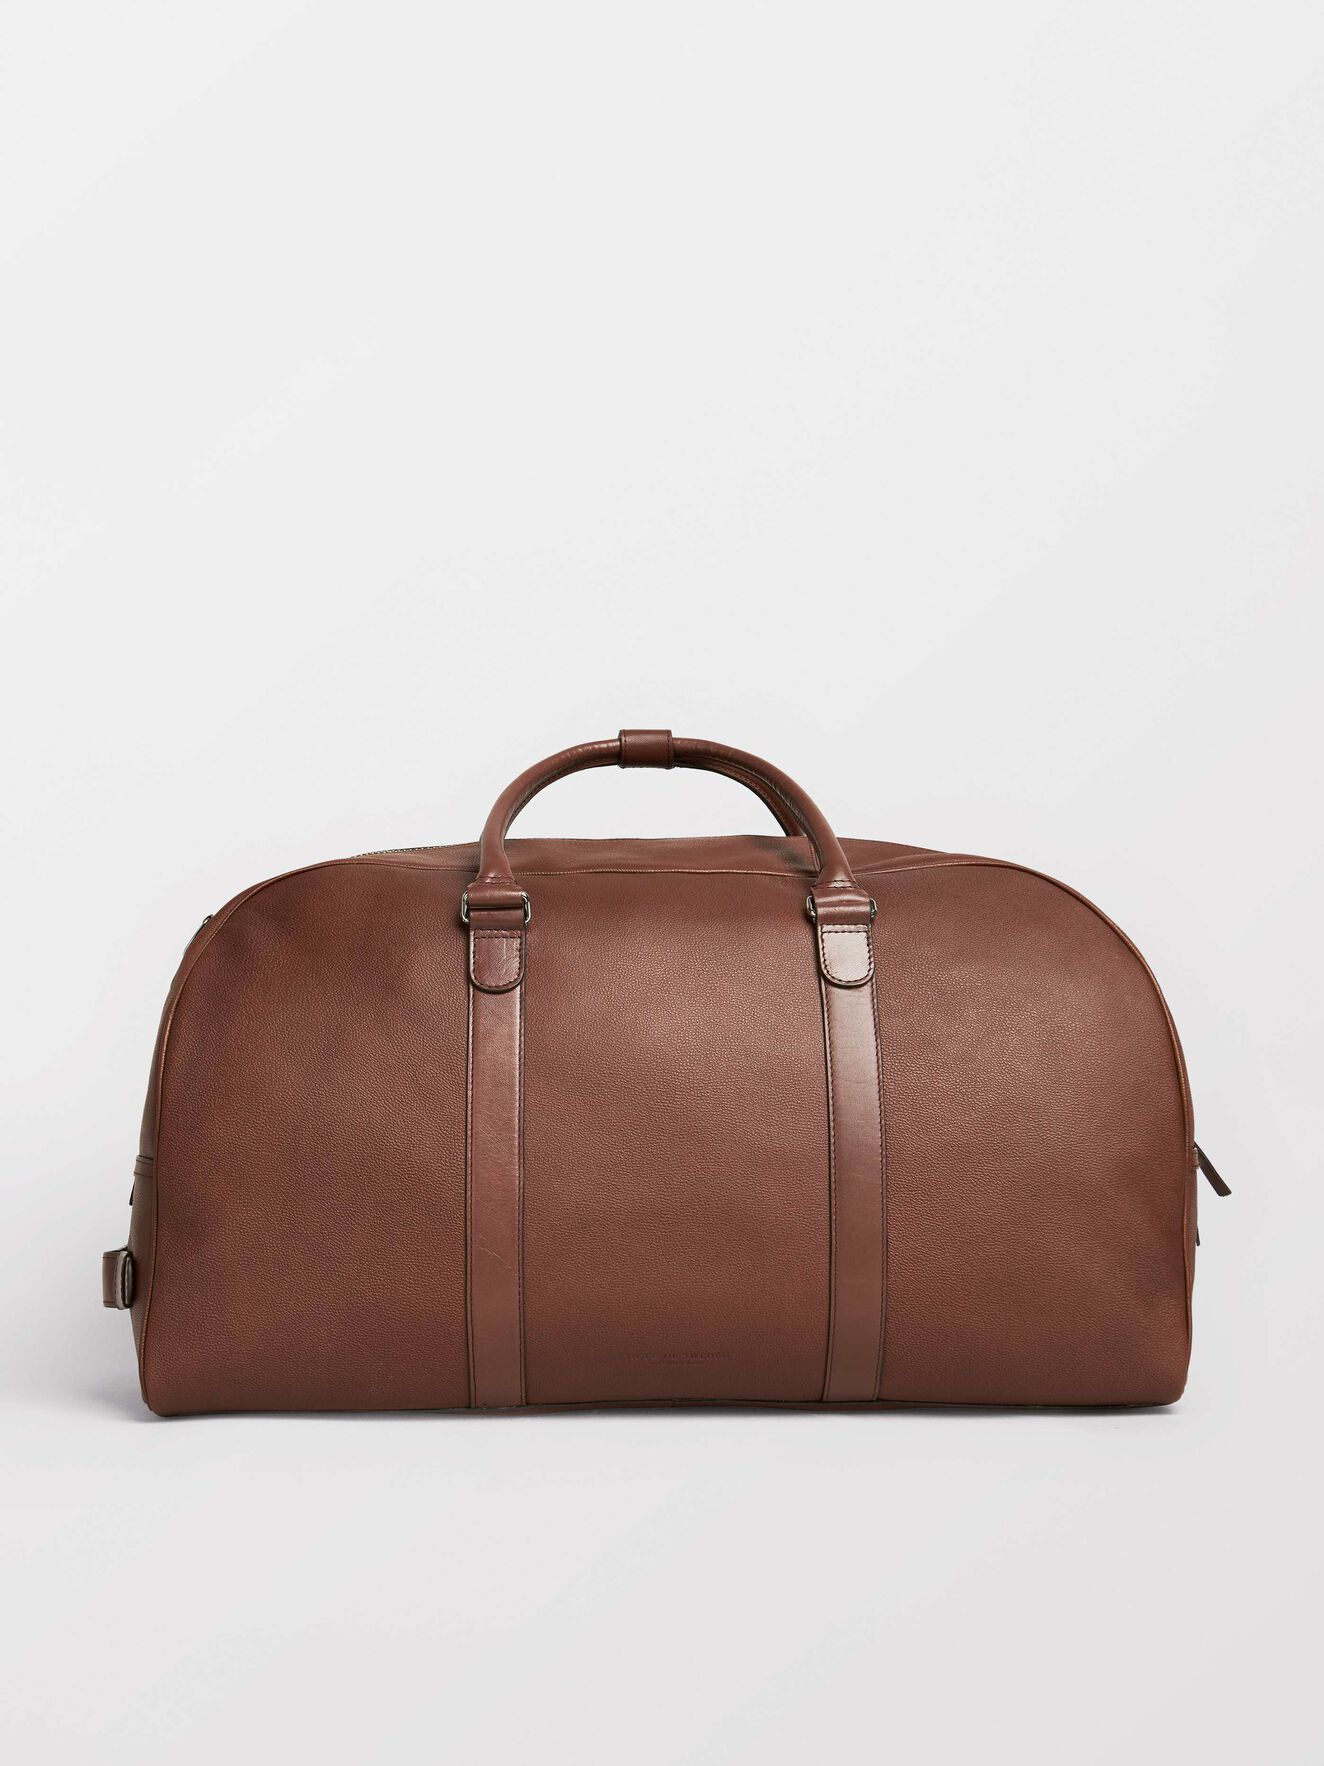 Pinchon Wochenendtasche in Medium Brown from Tiger of Sweden